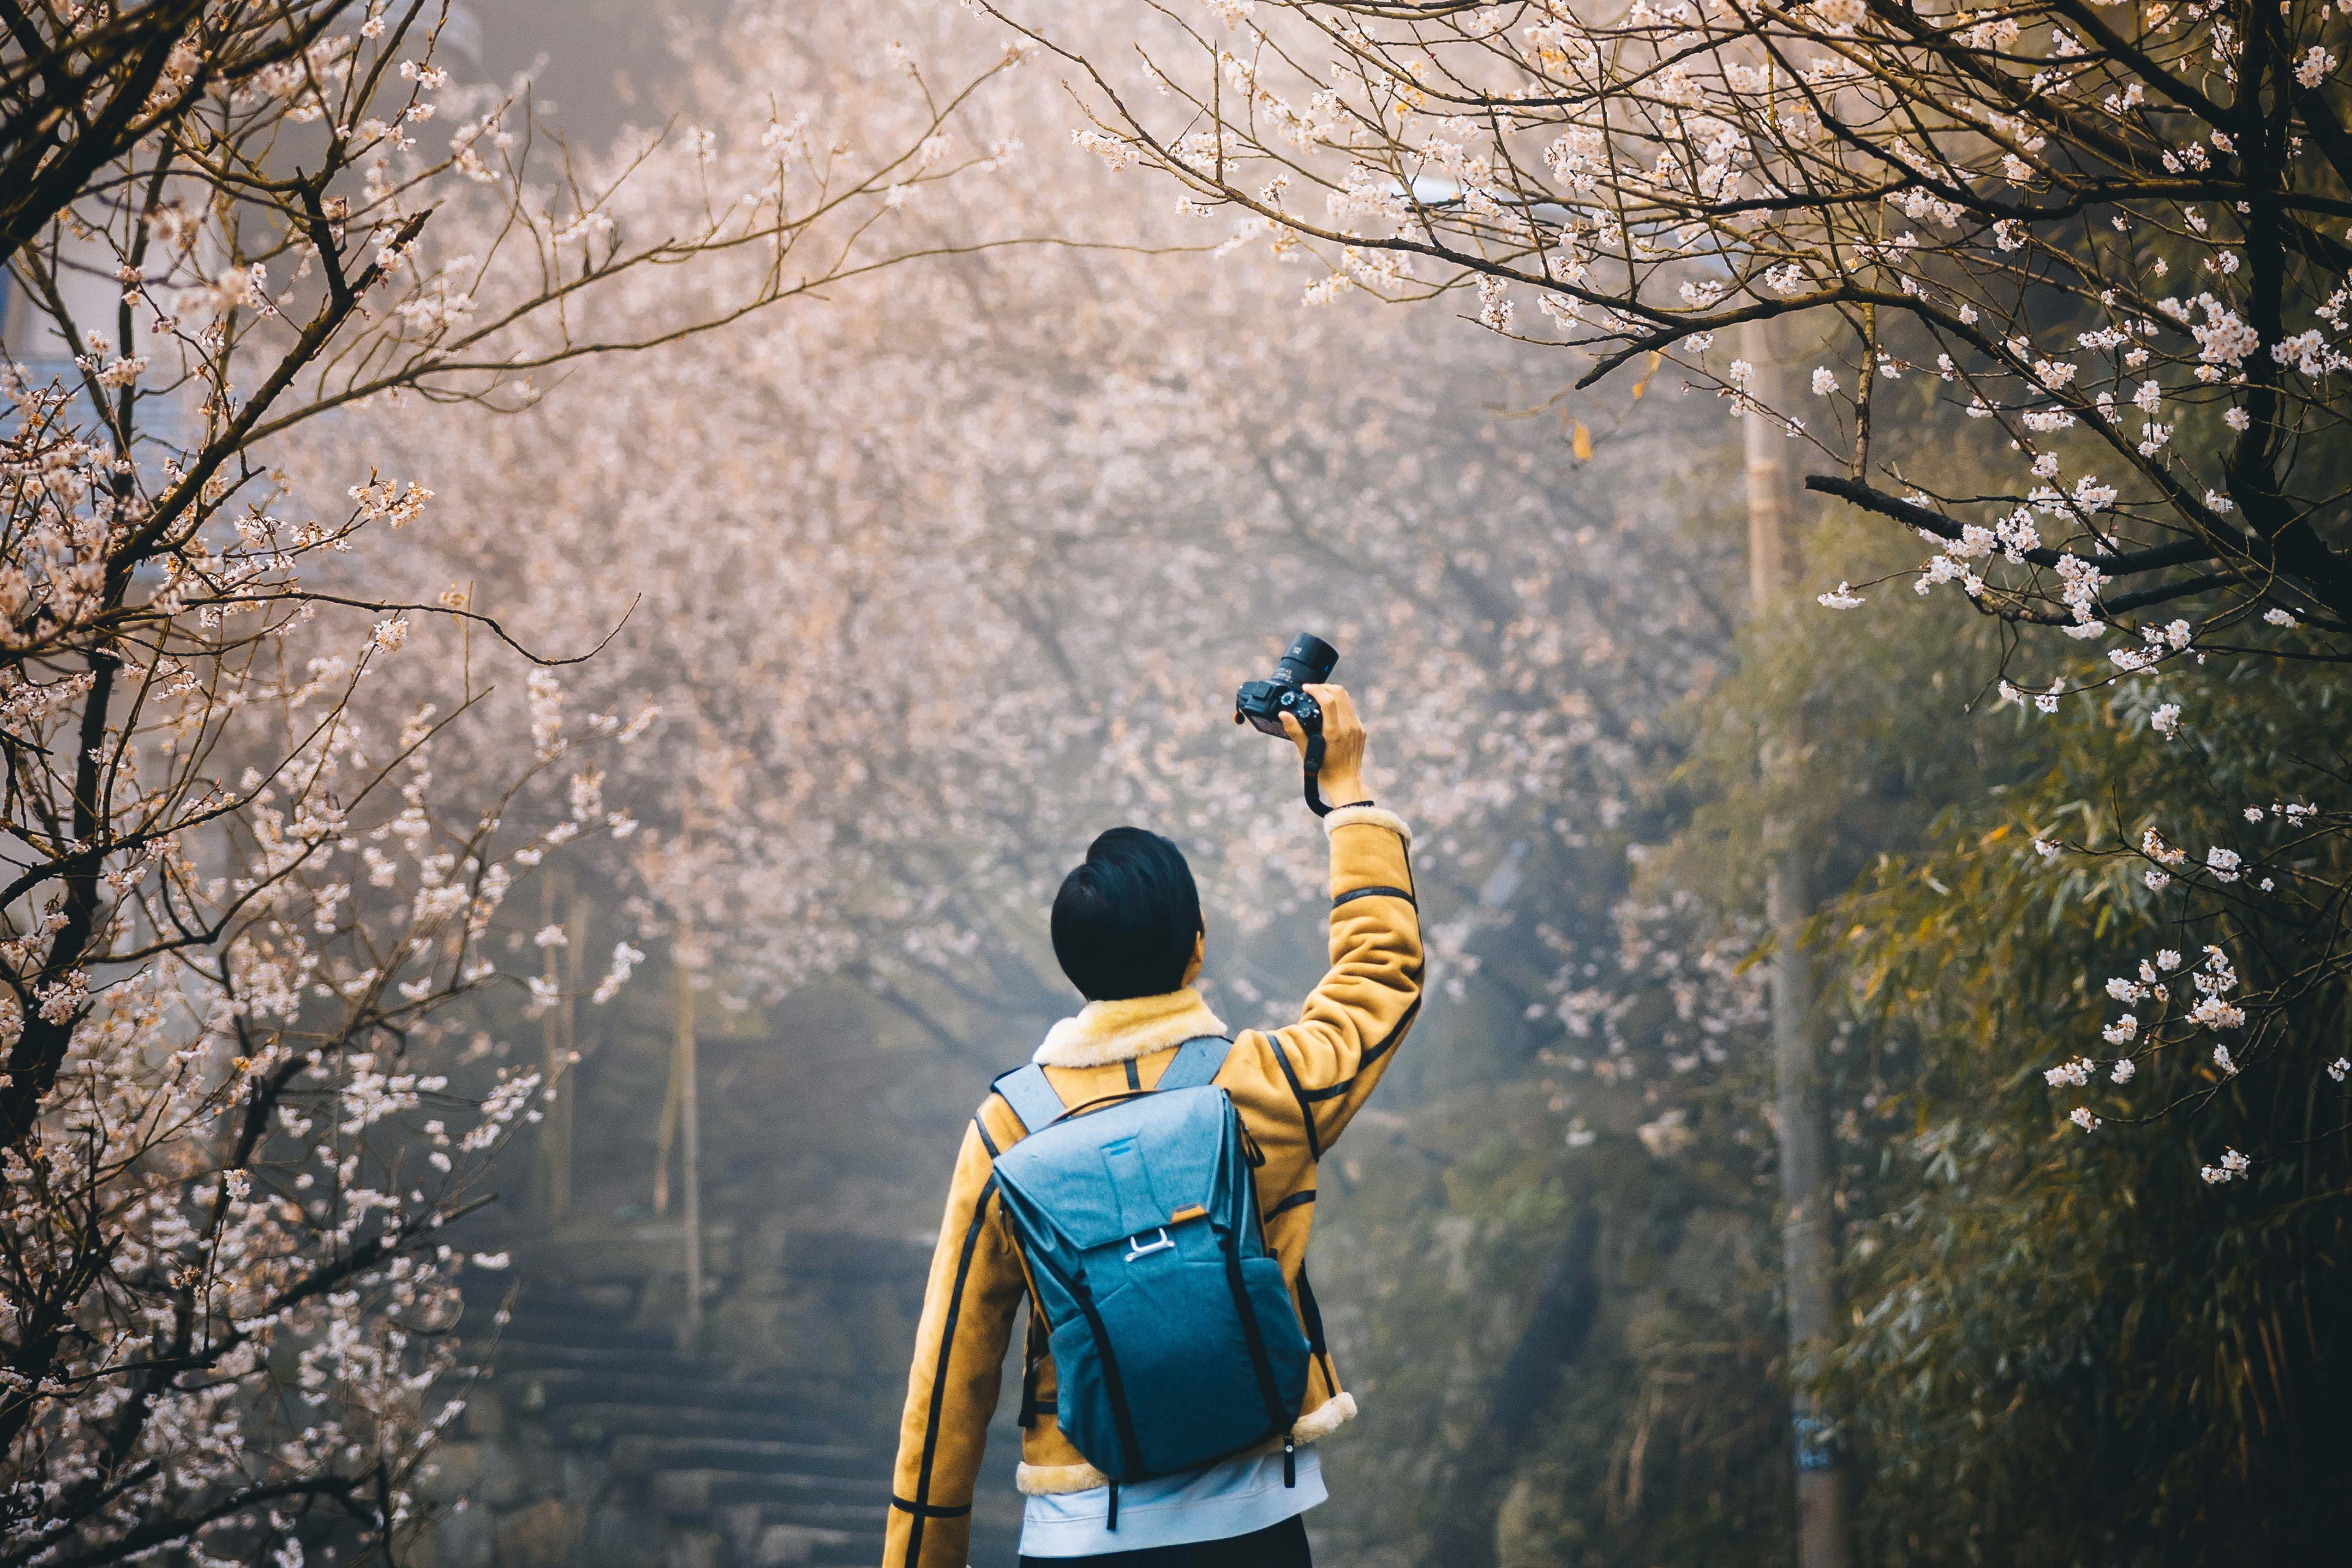 Man in yellow coat photographs cherry blossom